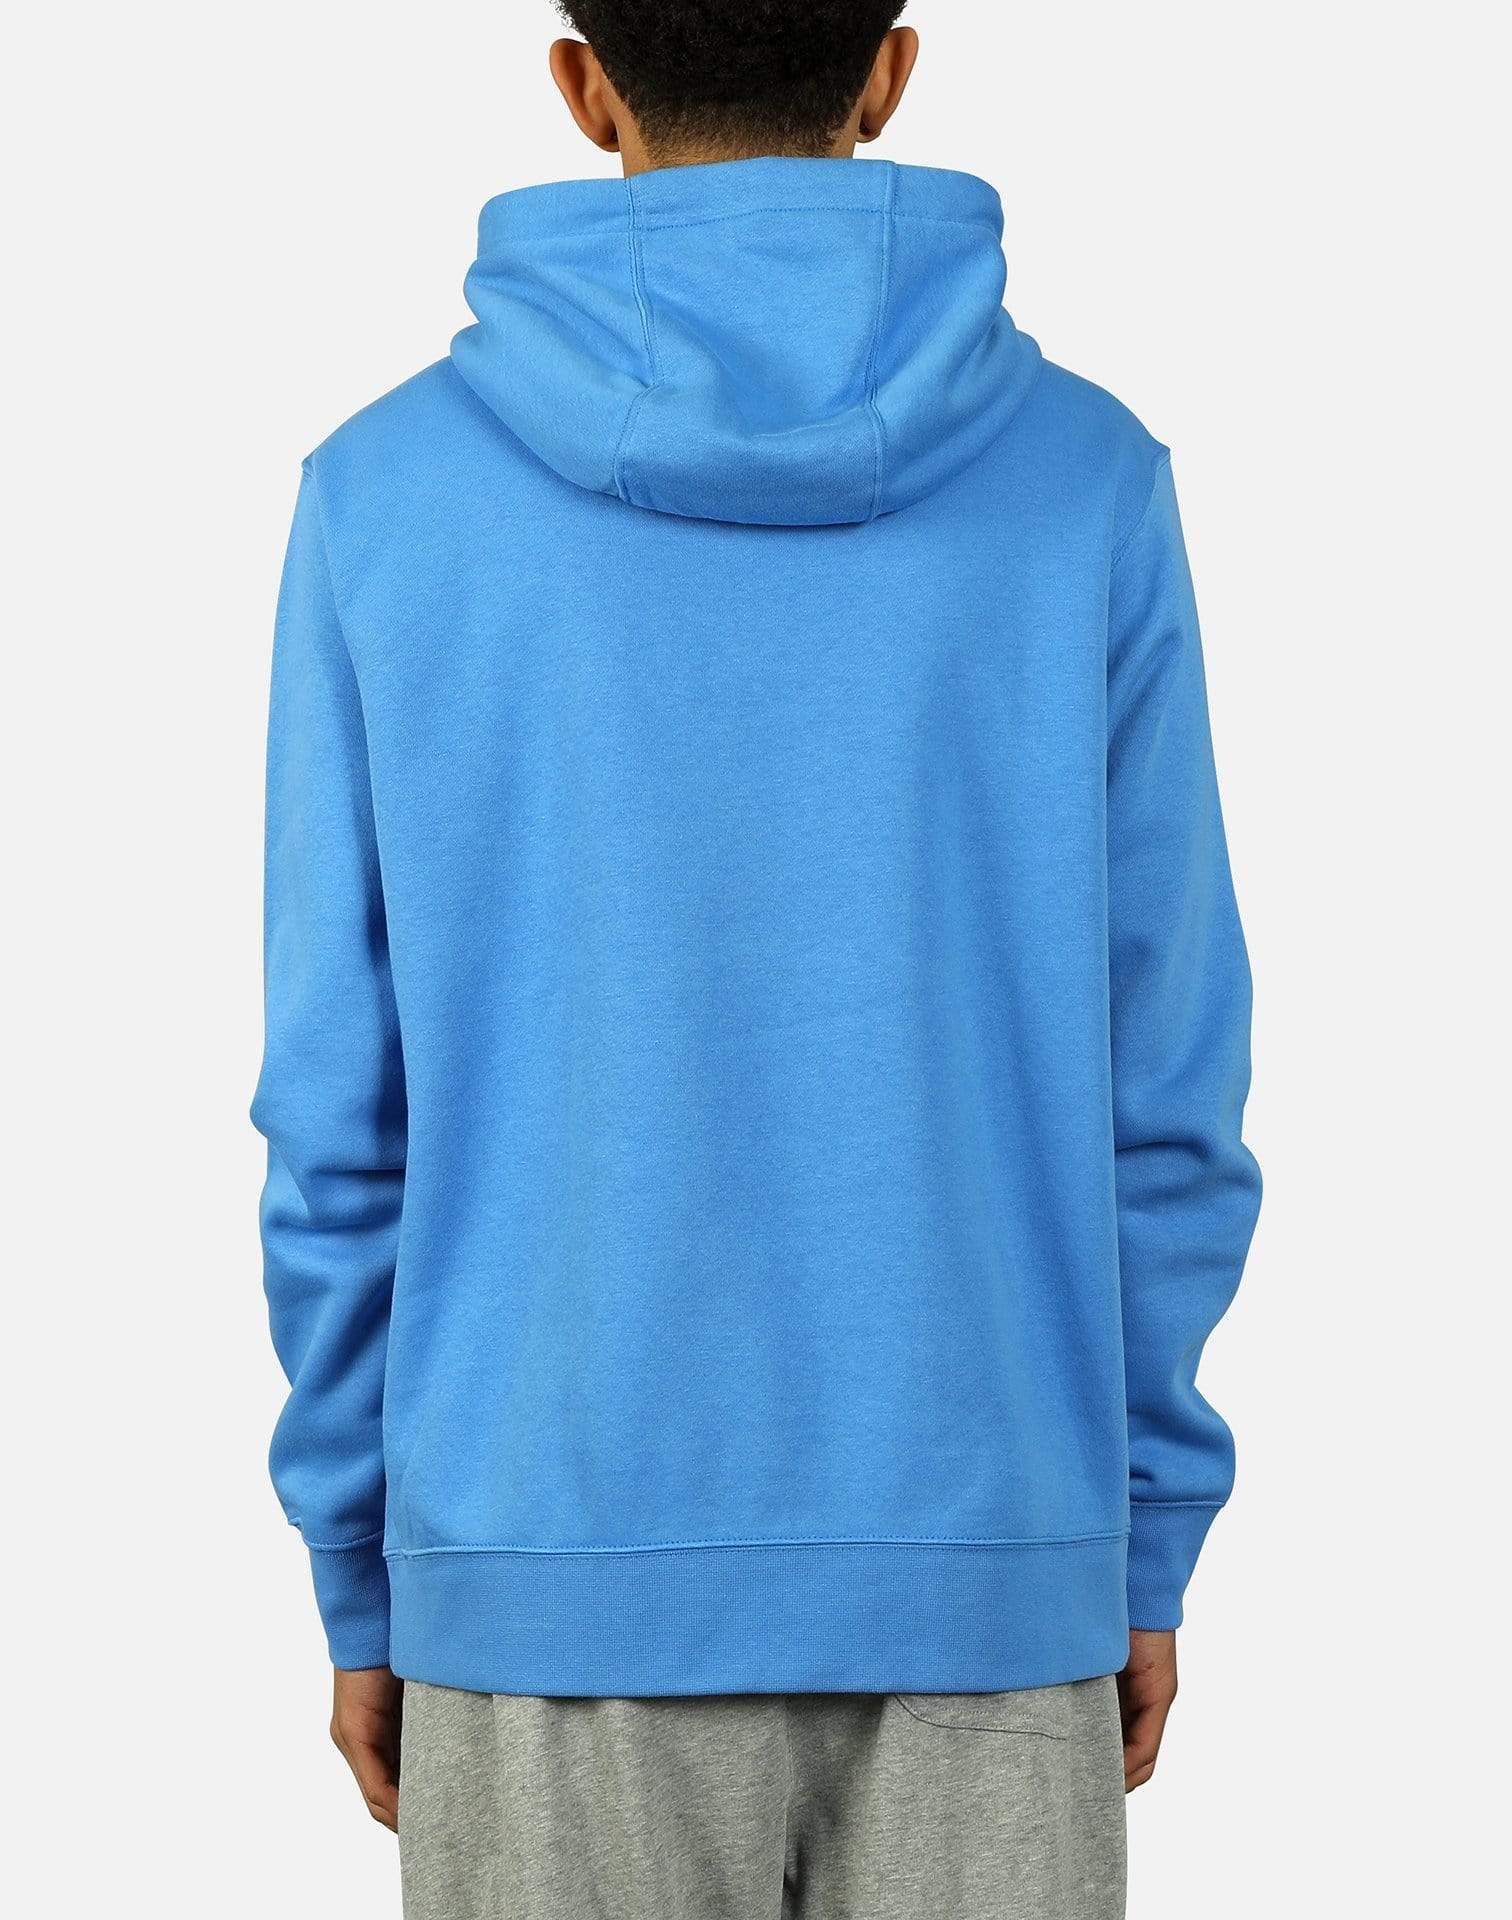 NSW CLUB FLEECE GRAPHIC PULLOVER HOODIE